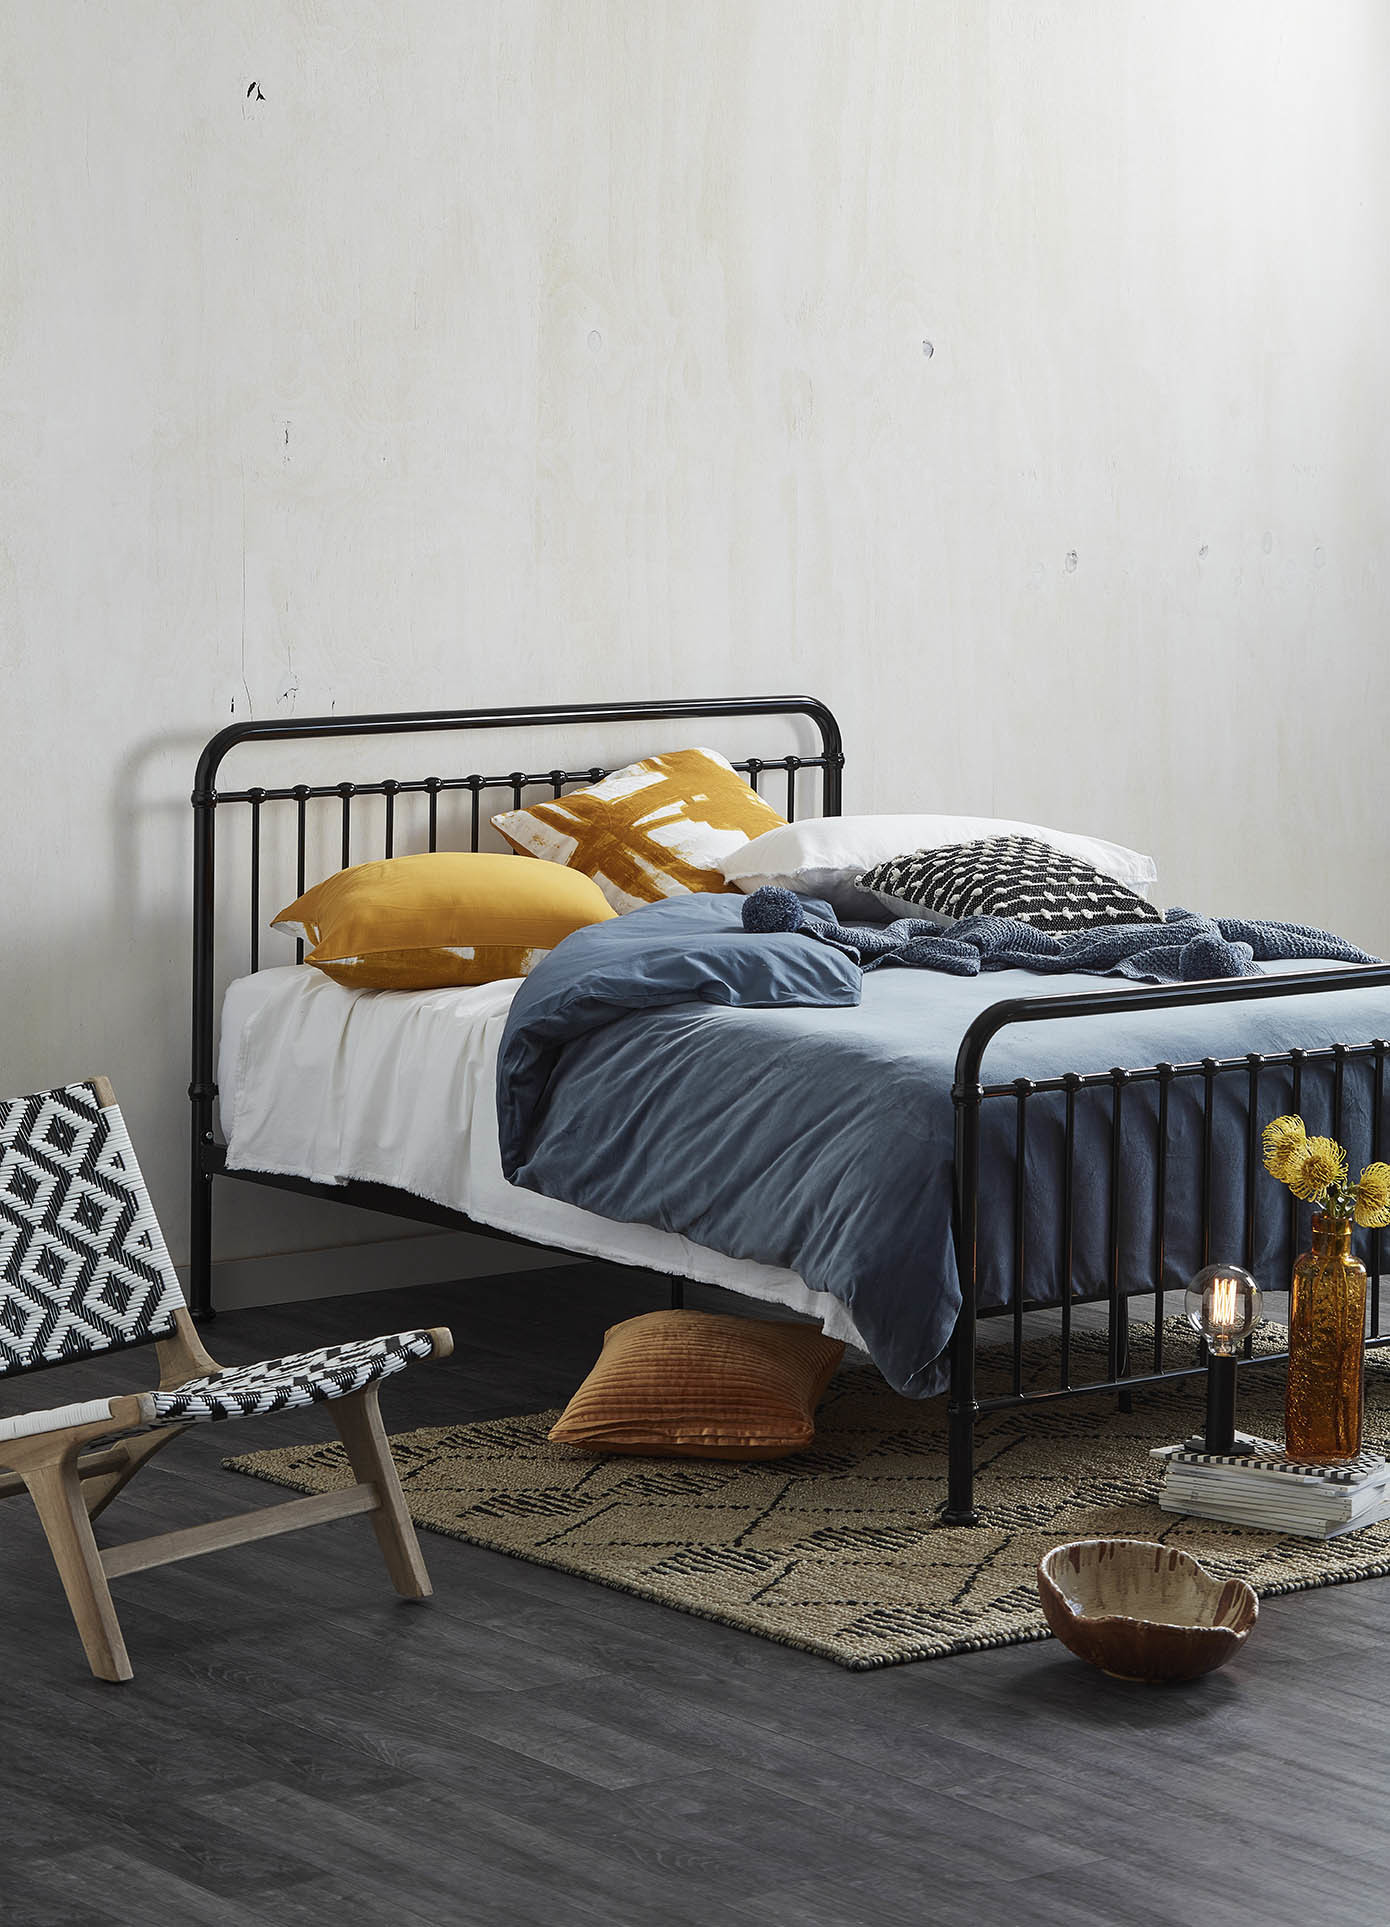 NEW-Black-Bailey-Metal-Bed-Frame-Temple-amp-Webster-Beds thumbnail 8